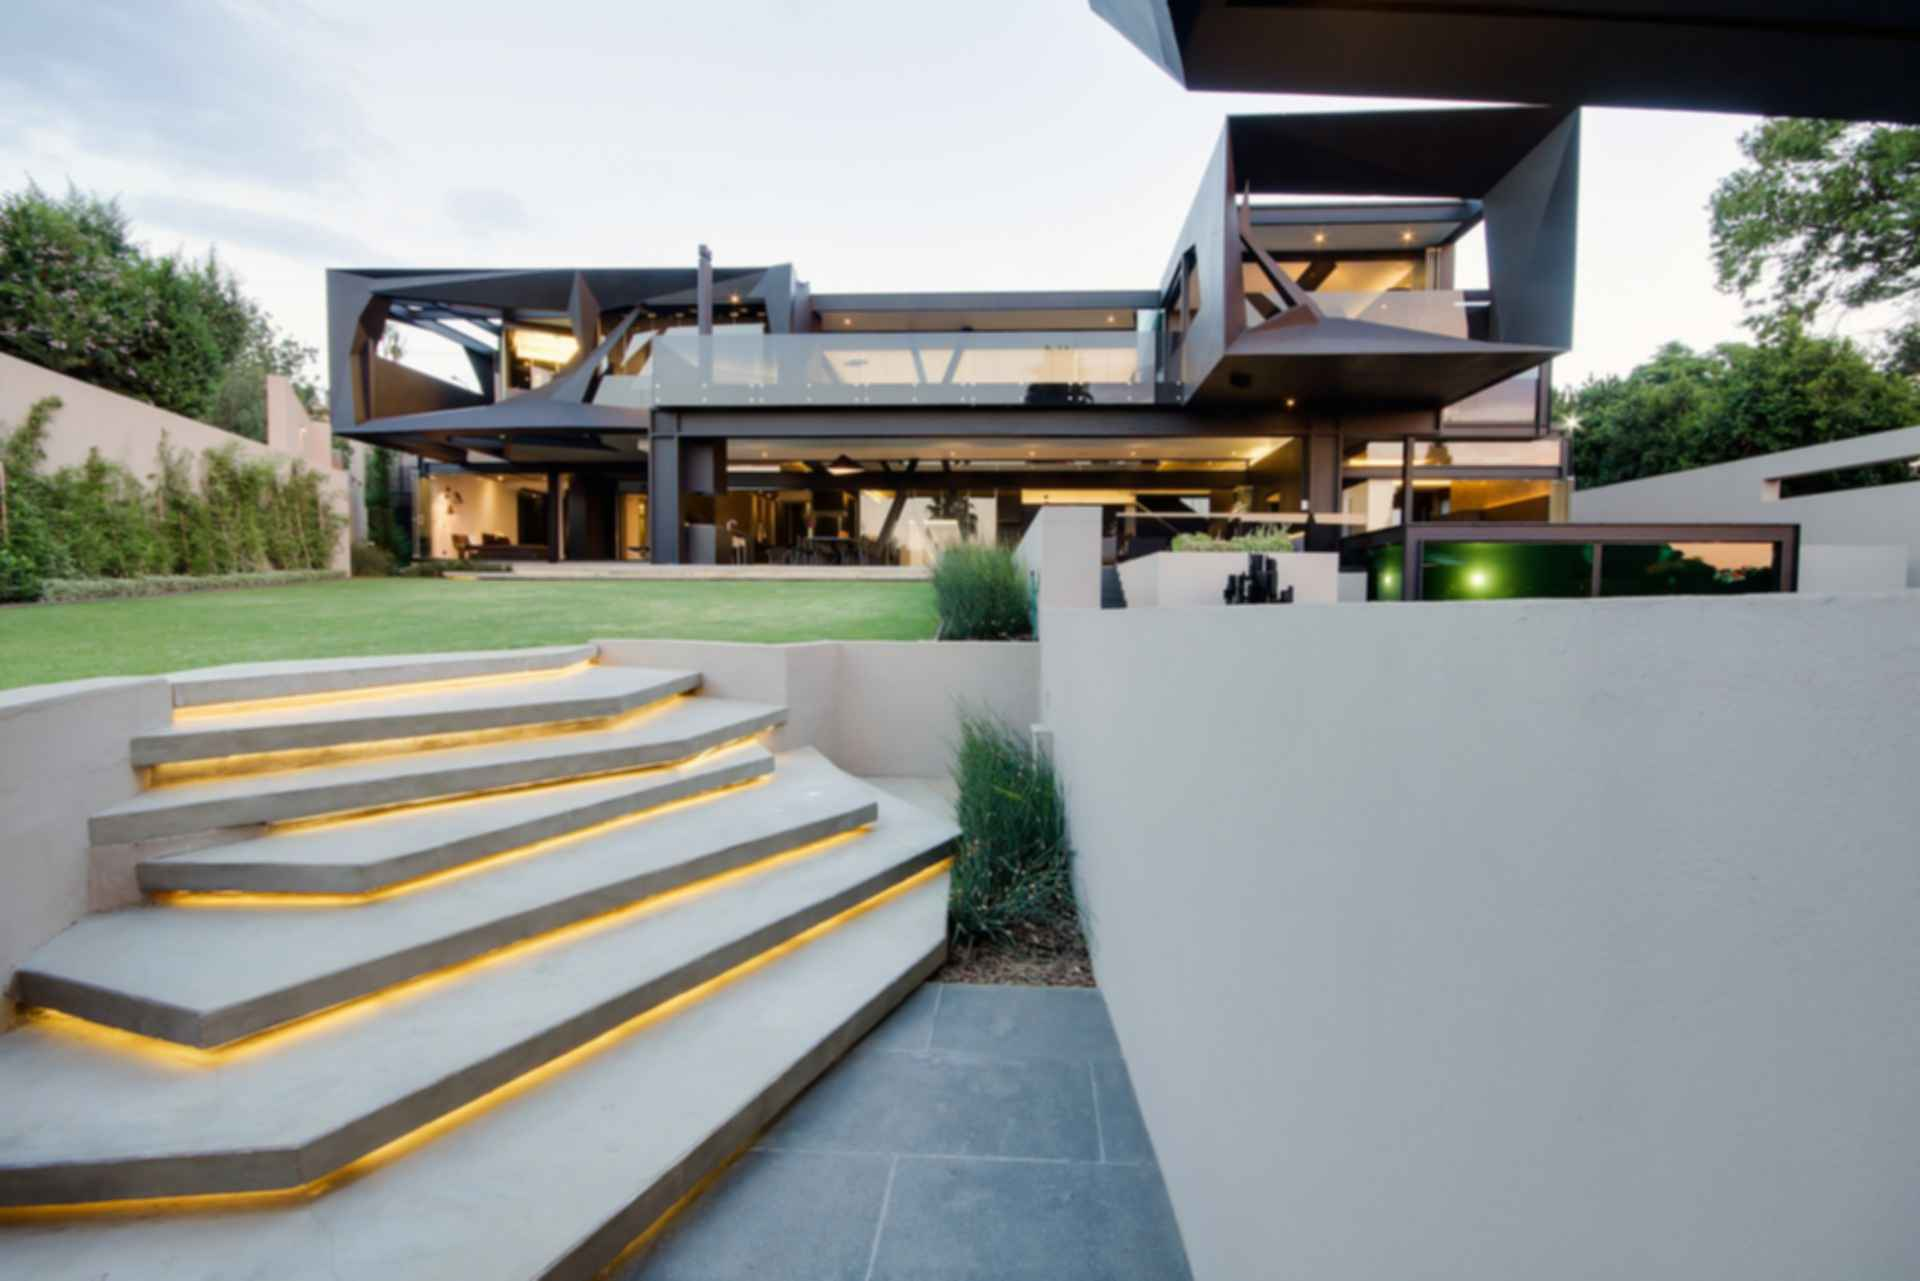 Kloof Road House - Exterior Stairs